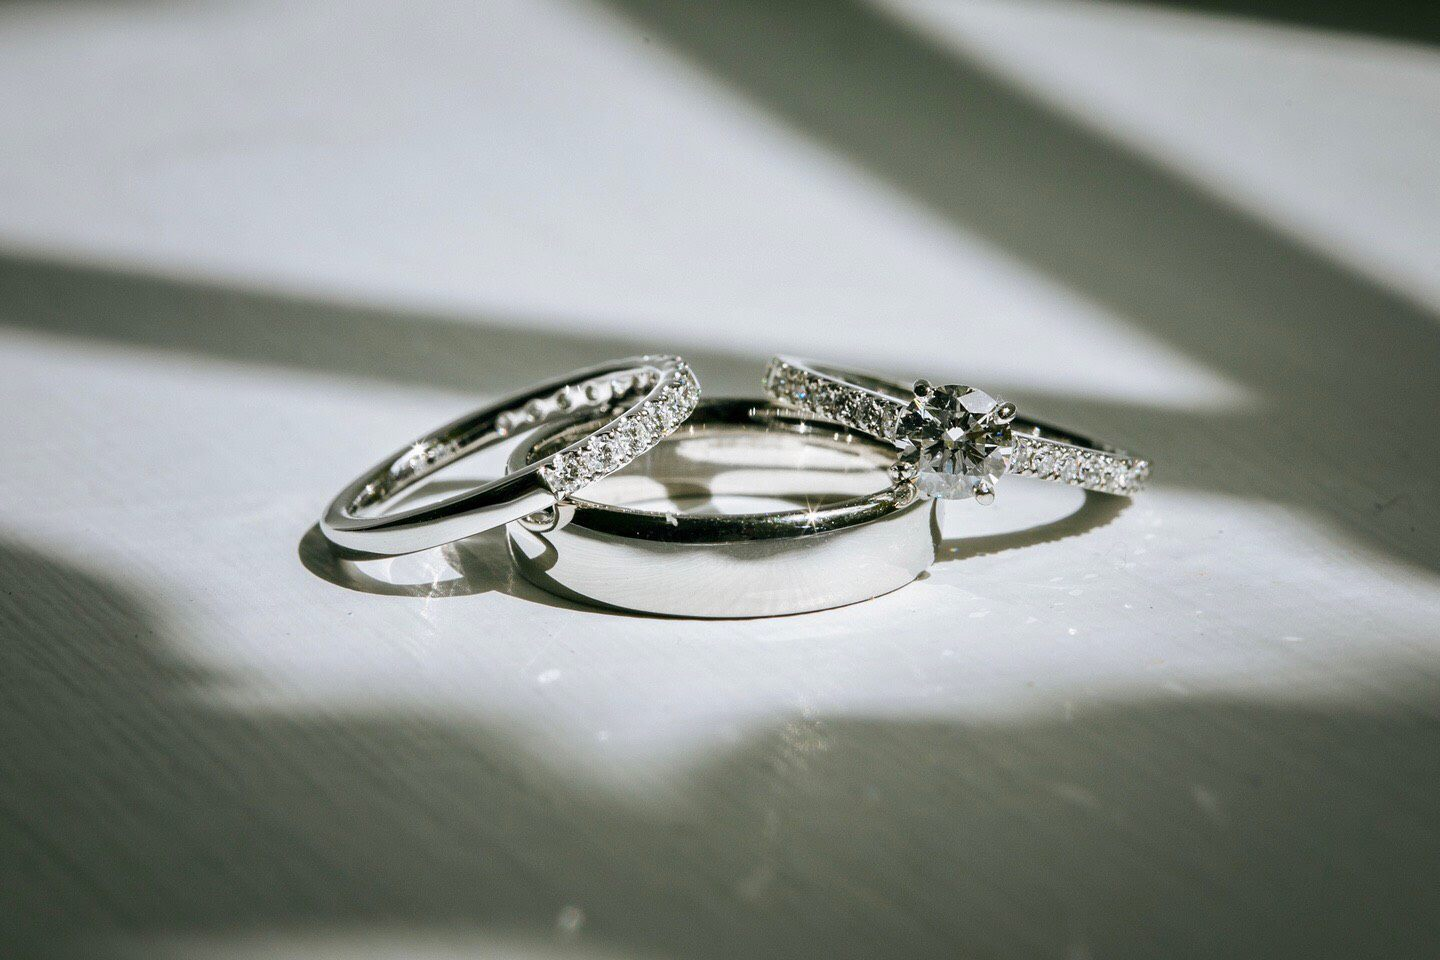 Why are platinum rings more valuable than gold?